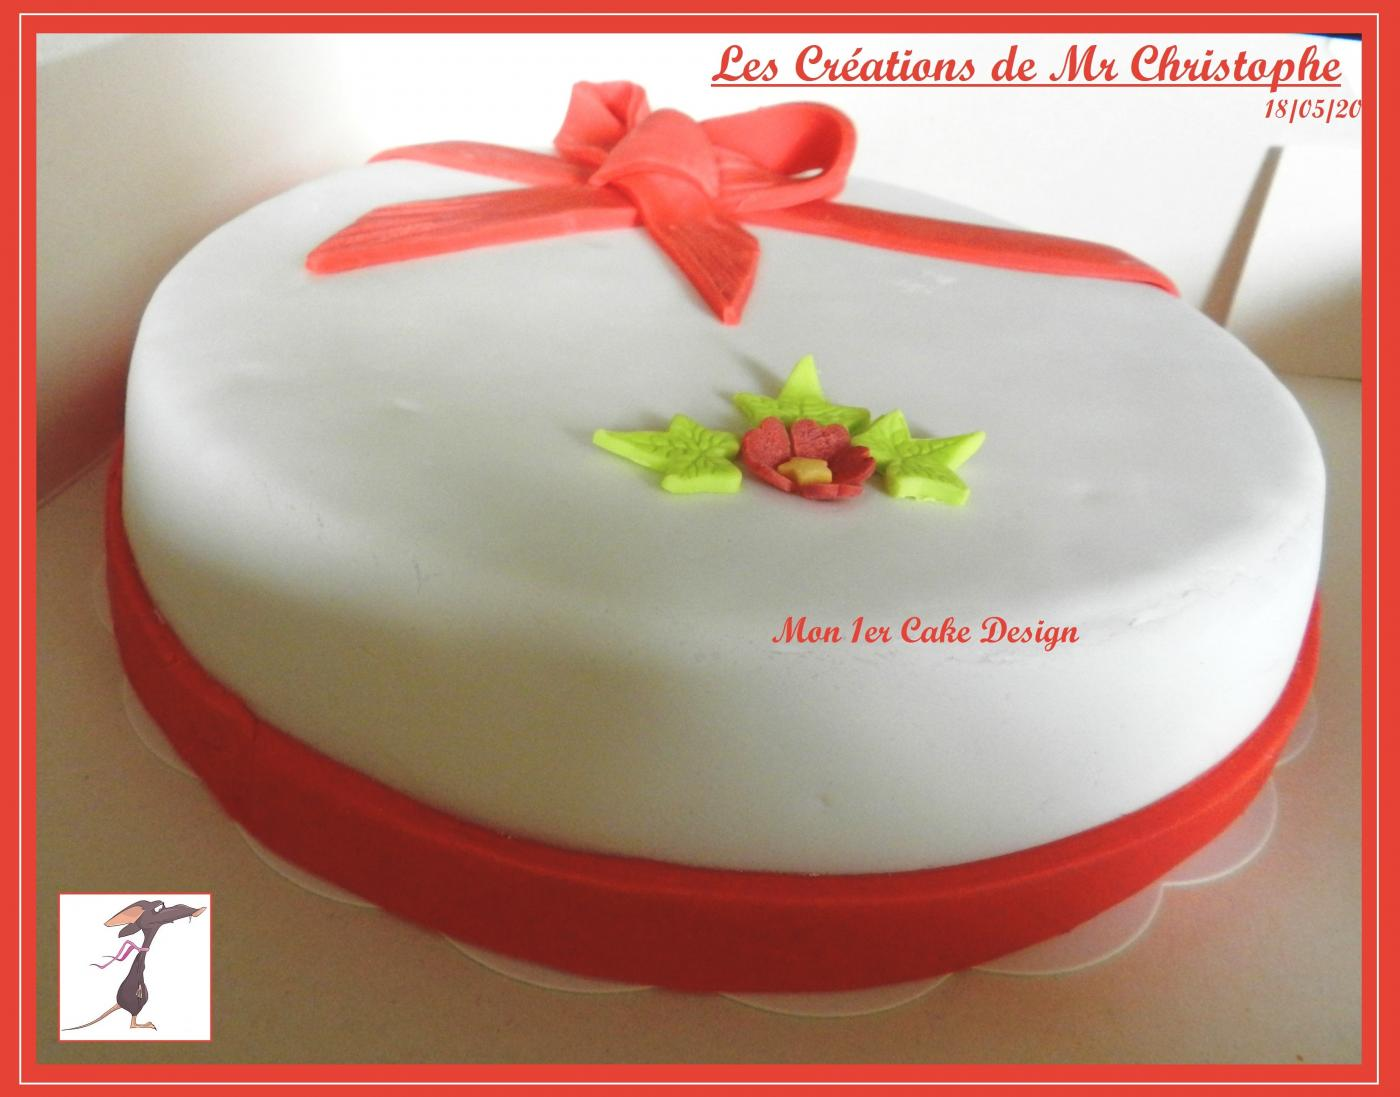 Le 1er Cake Design de Mr Christophe - Mai 2015